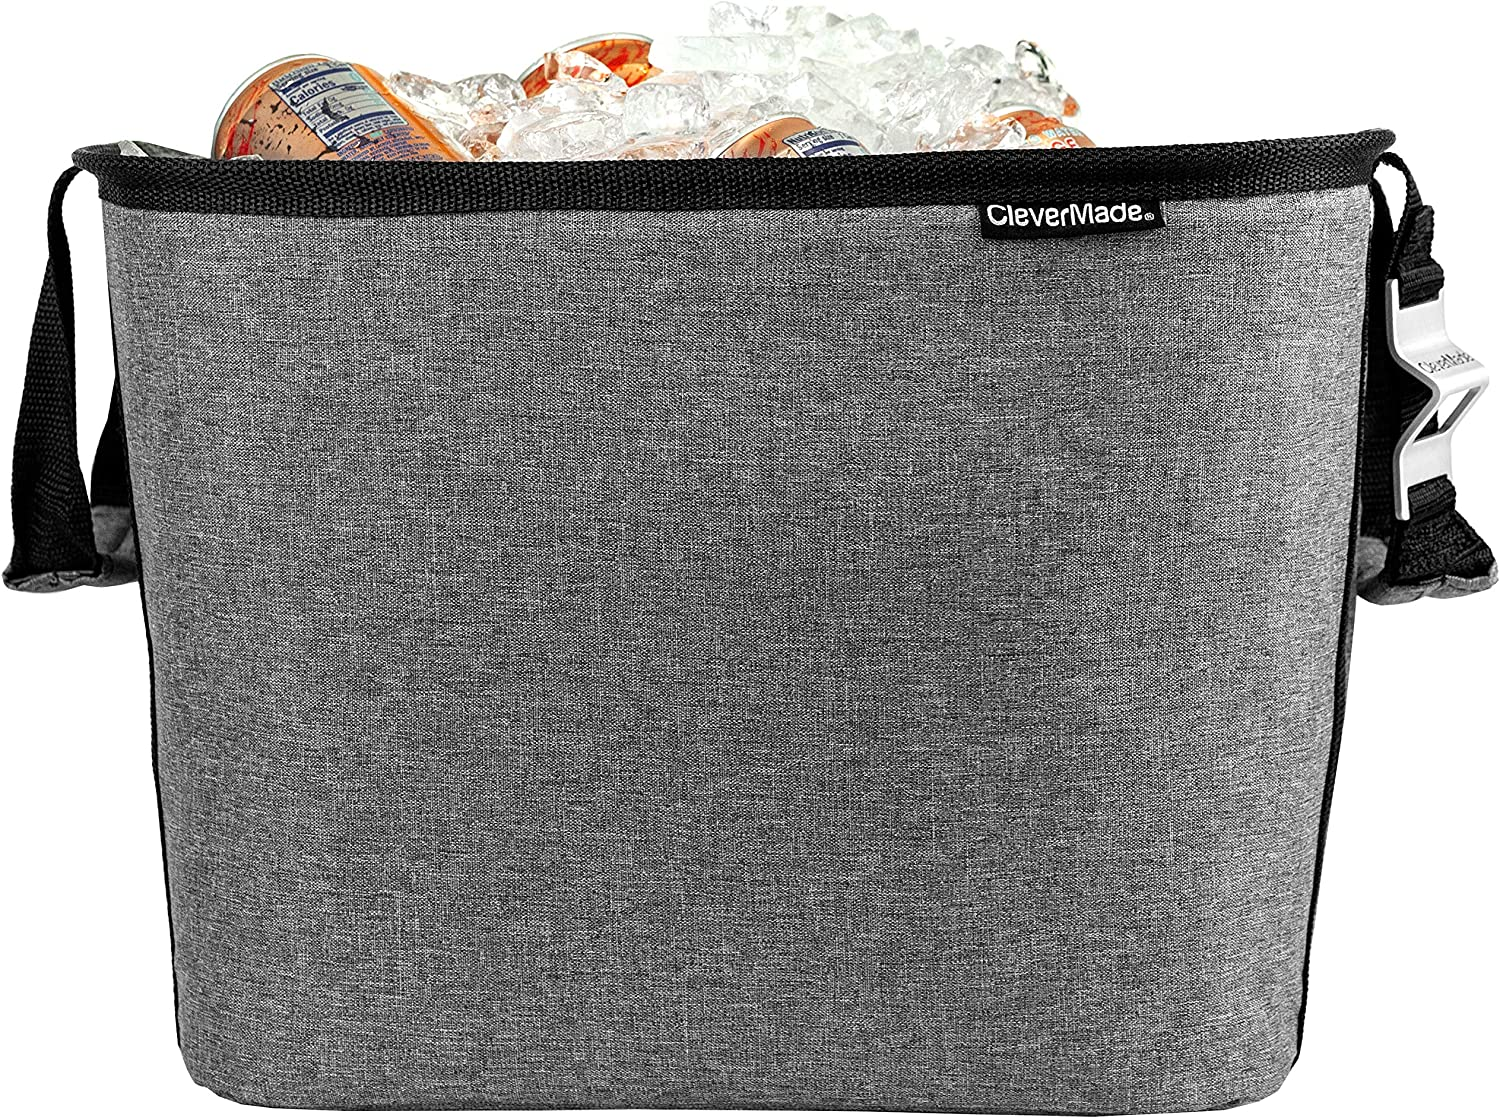 CleverMade 36 Can Party Tub, Insulated Leakproof Collapsible Beverage Cooler Bucket & Ice Chest For Backyard Parties, Tailgating & Home Entertaining, Charcoal